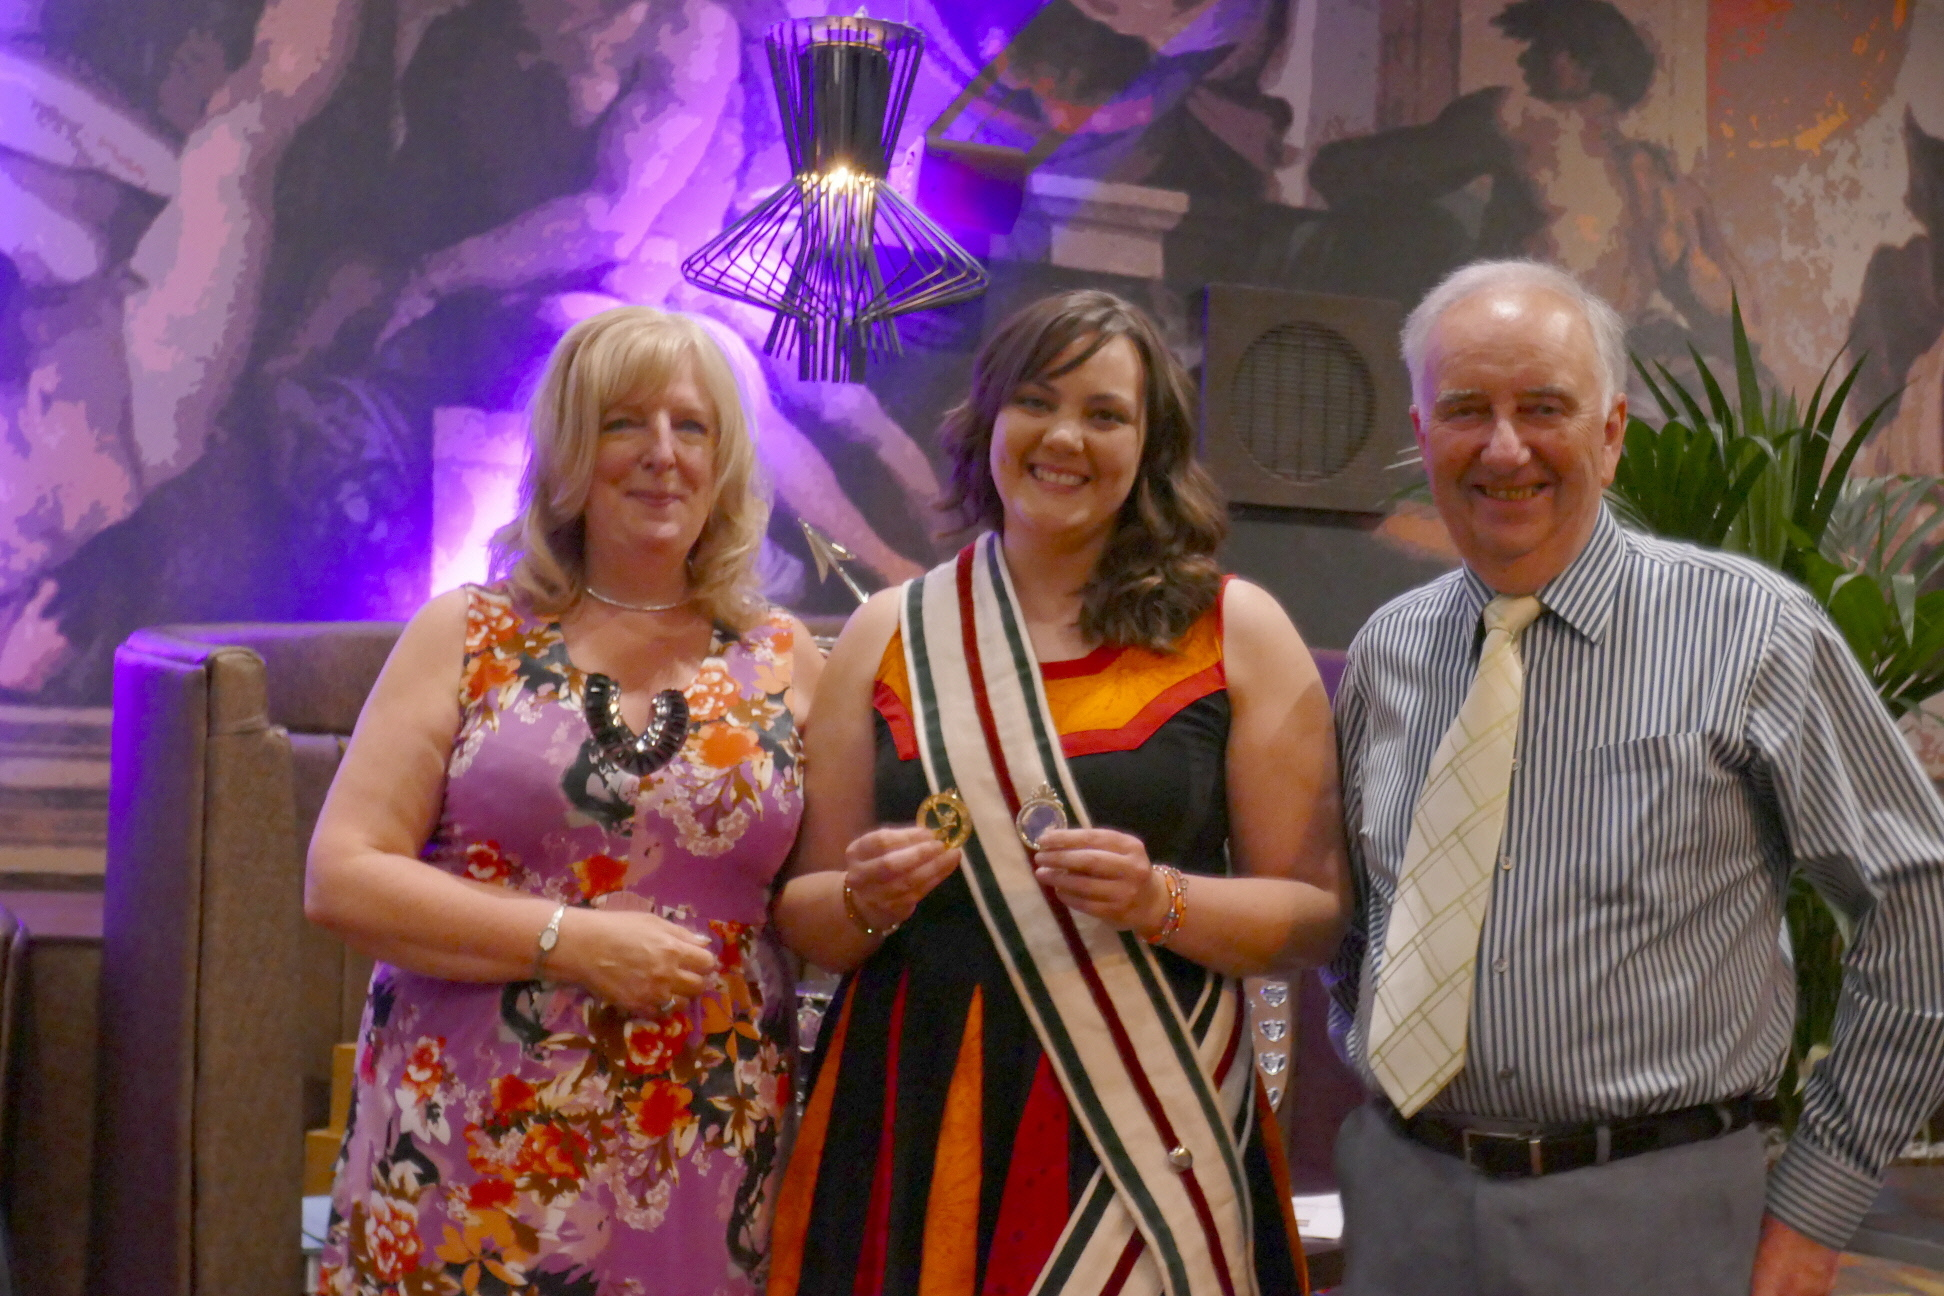 Captain Laura McHarg with Audrey Sutton on the left and Stuart Wilson the Society's President on the right